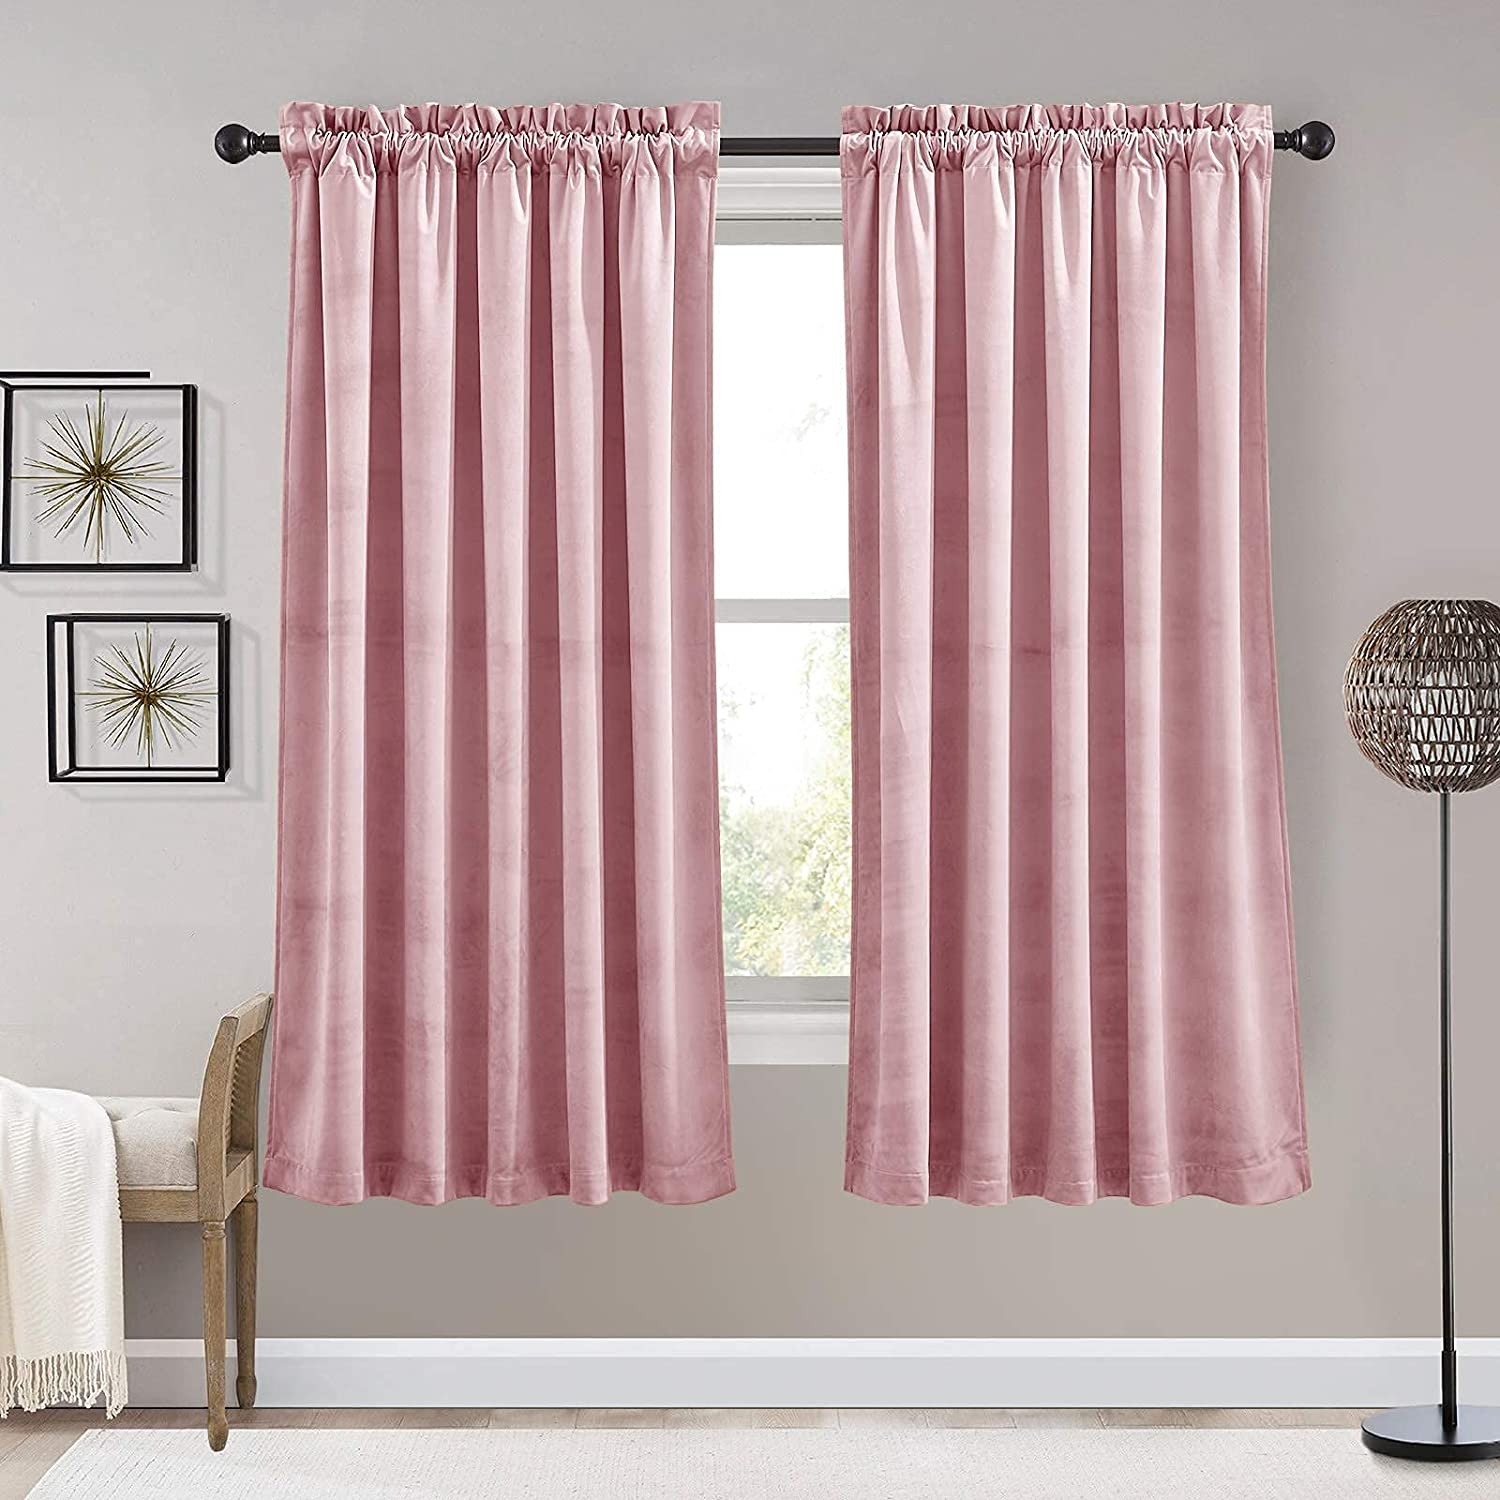 RYB HOME Velvet Curtains for Kids Th Soft Super - New product!! Outstanding Room Darkening